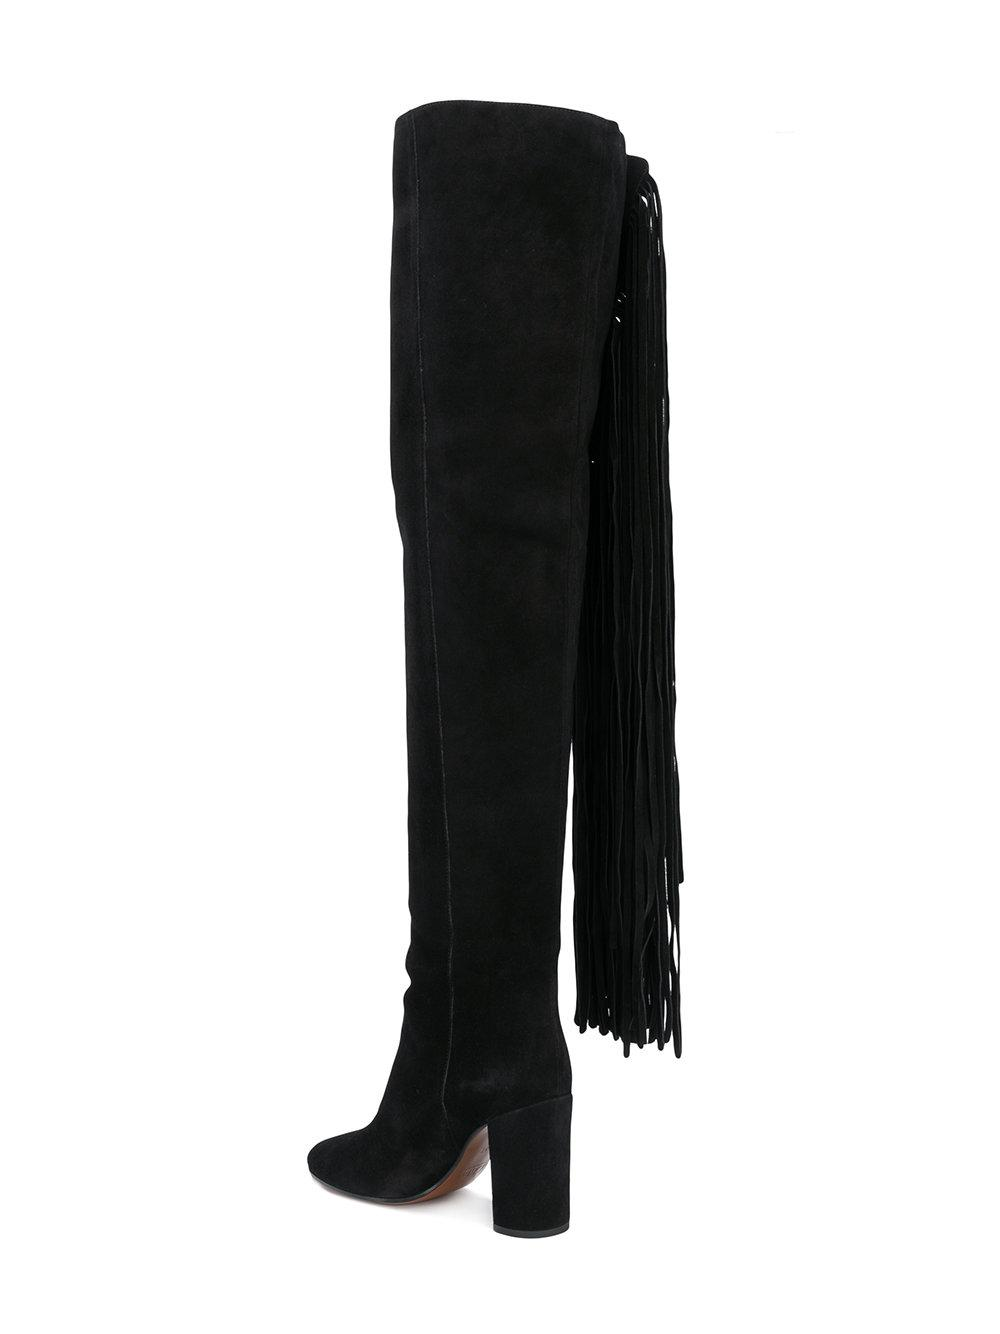 Qaisha fringed over-the-knee boots - Black Chlo yA1xsjP9